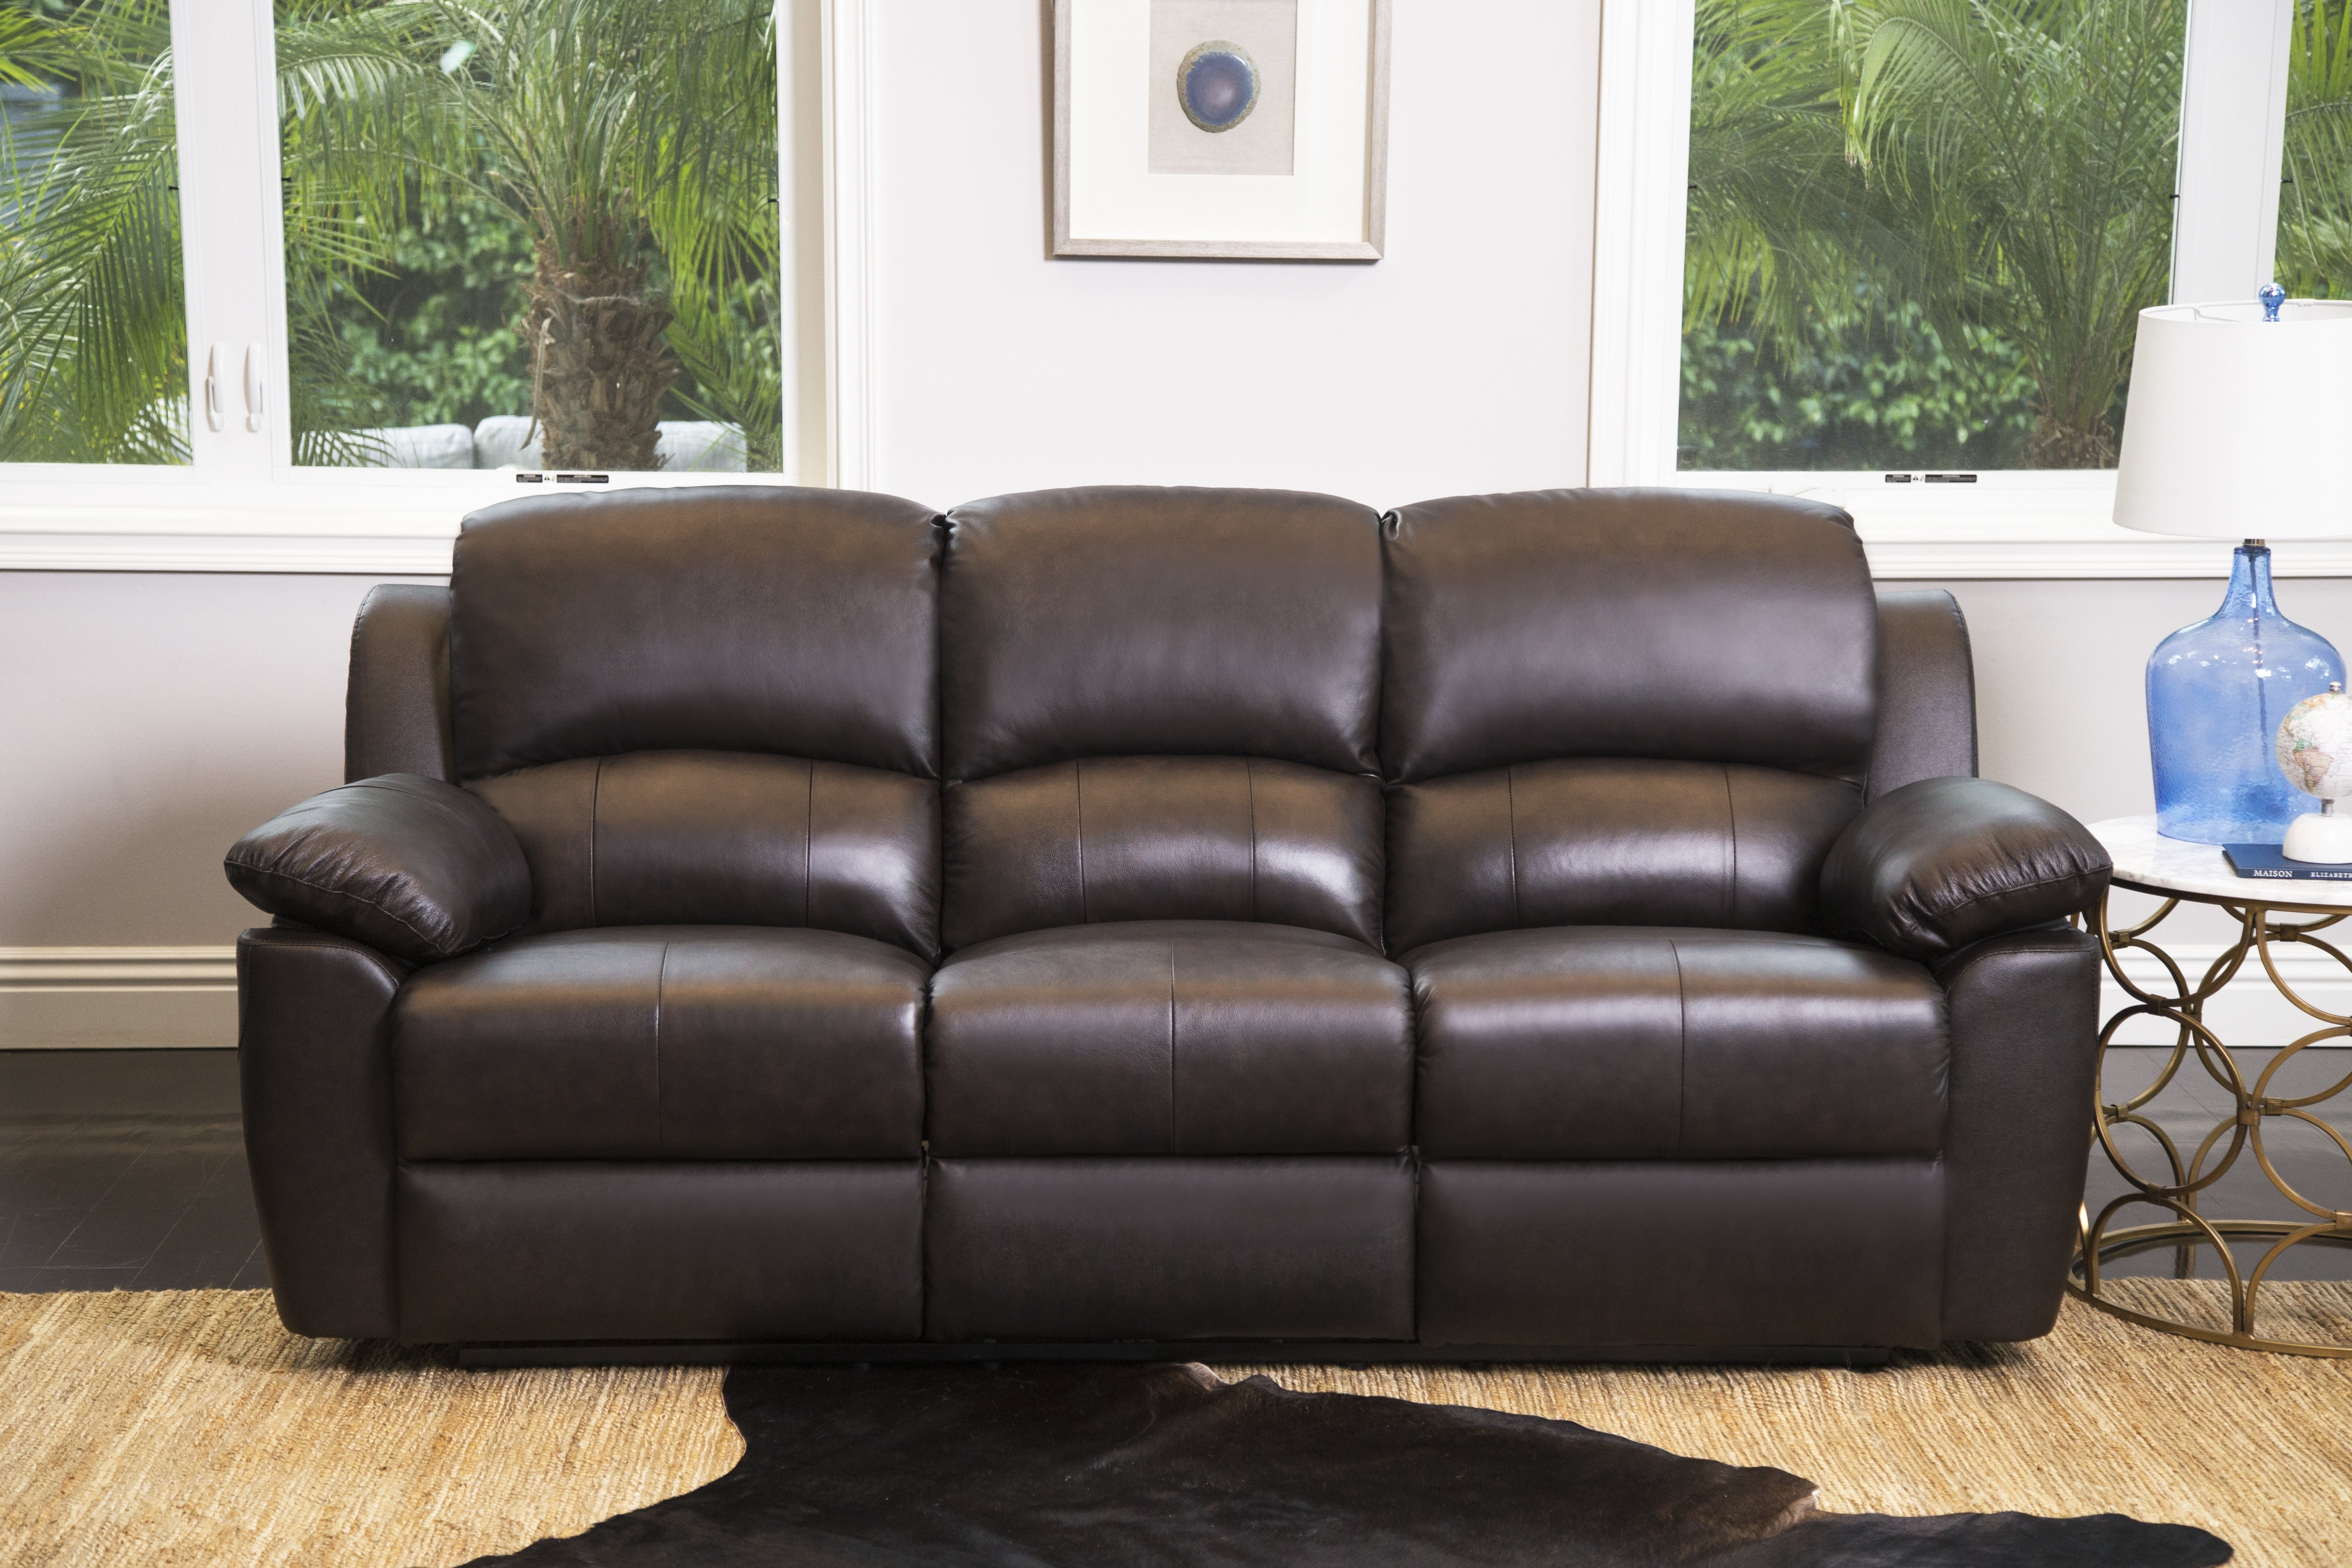 Darby Home Co Blackmoor Genuine Leather Reclining Sofa & Reviews In Travis Dk Grey Leather 6 Piece Power Reclining Sectionals With Power Headrest & Usb (Image 9 of 25)